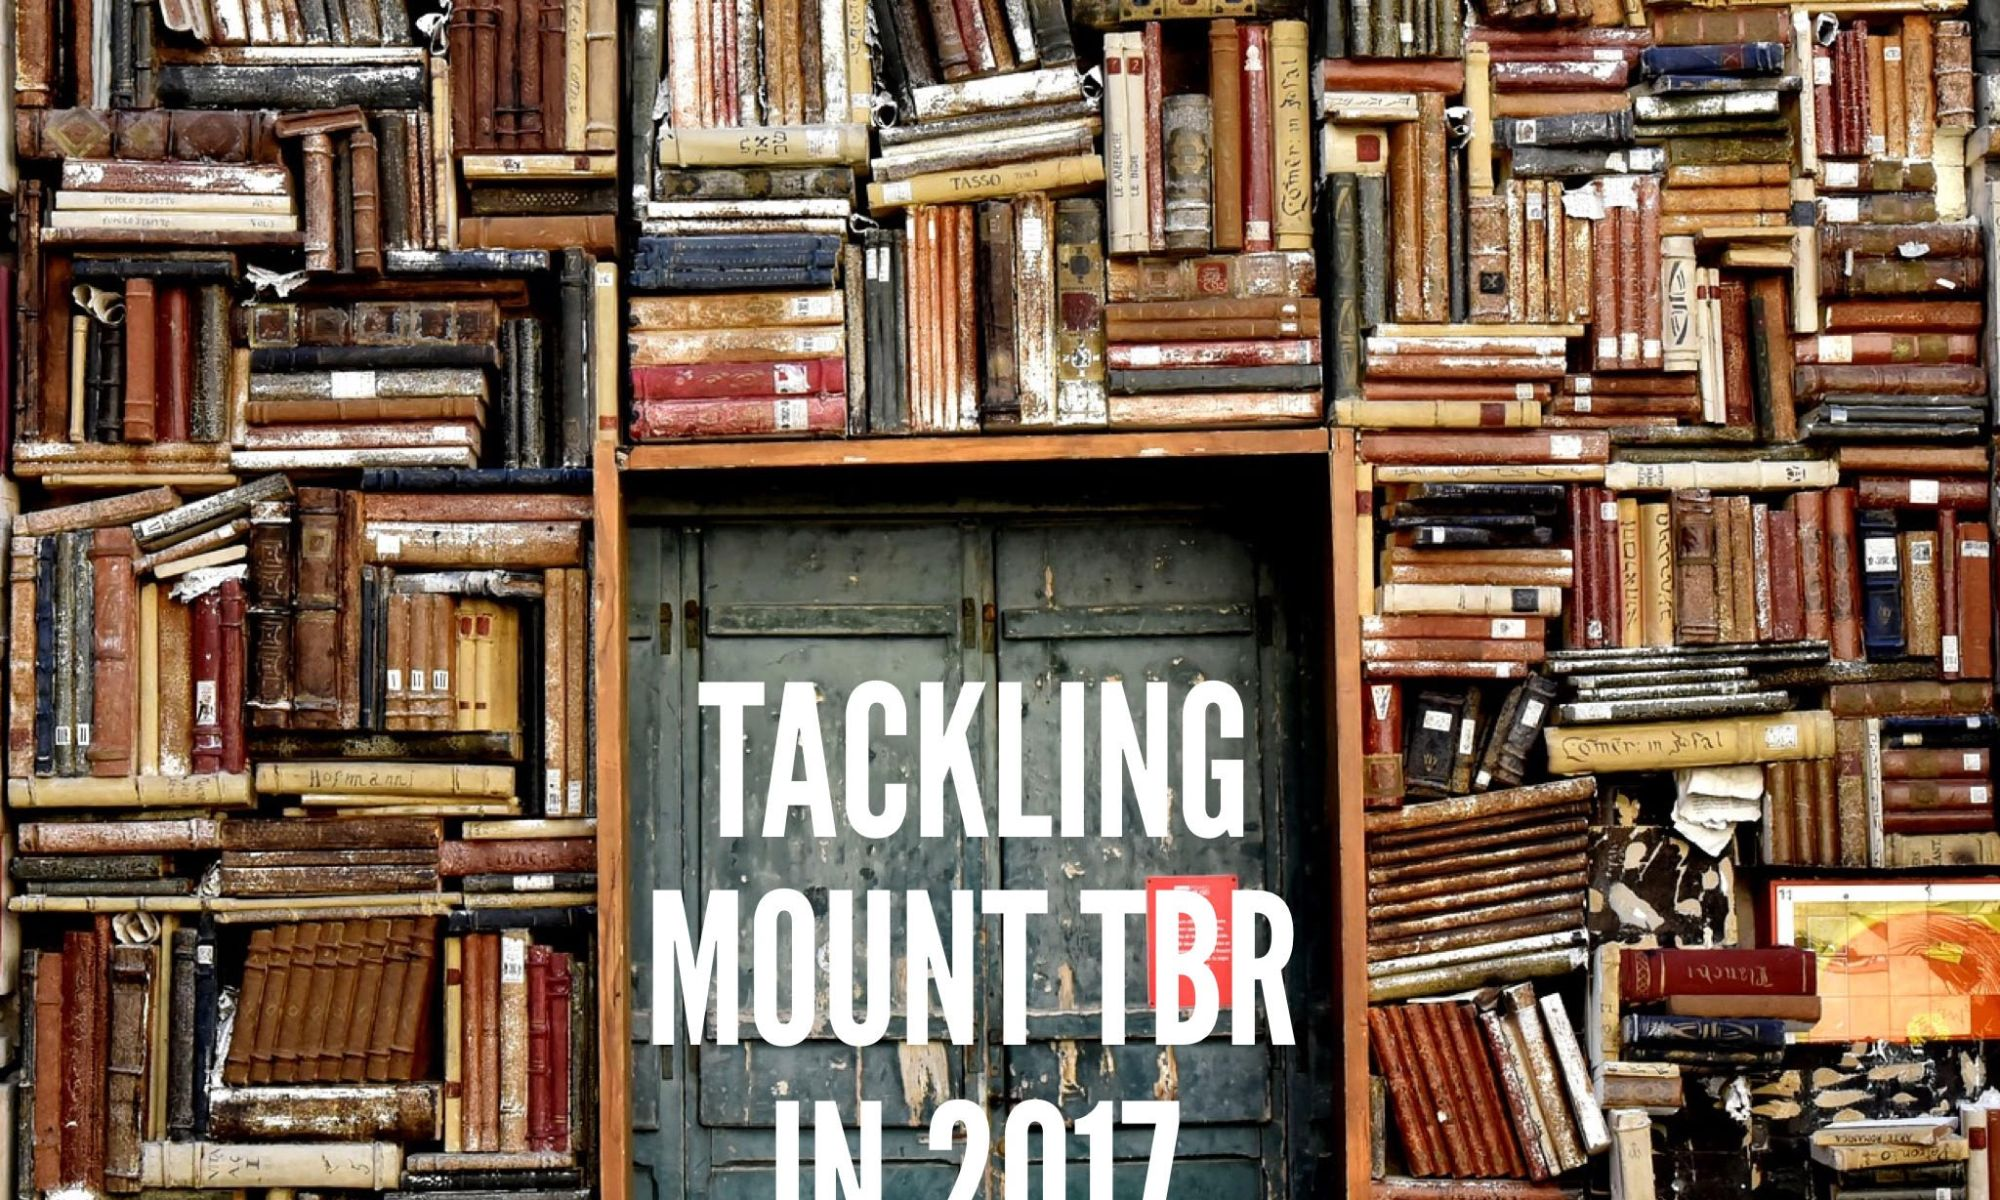 Tackling Mount TBR in 2017